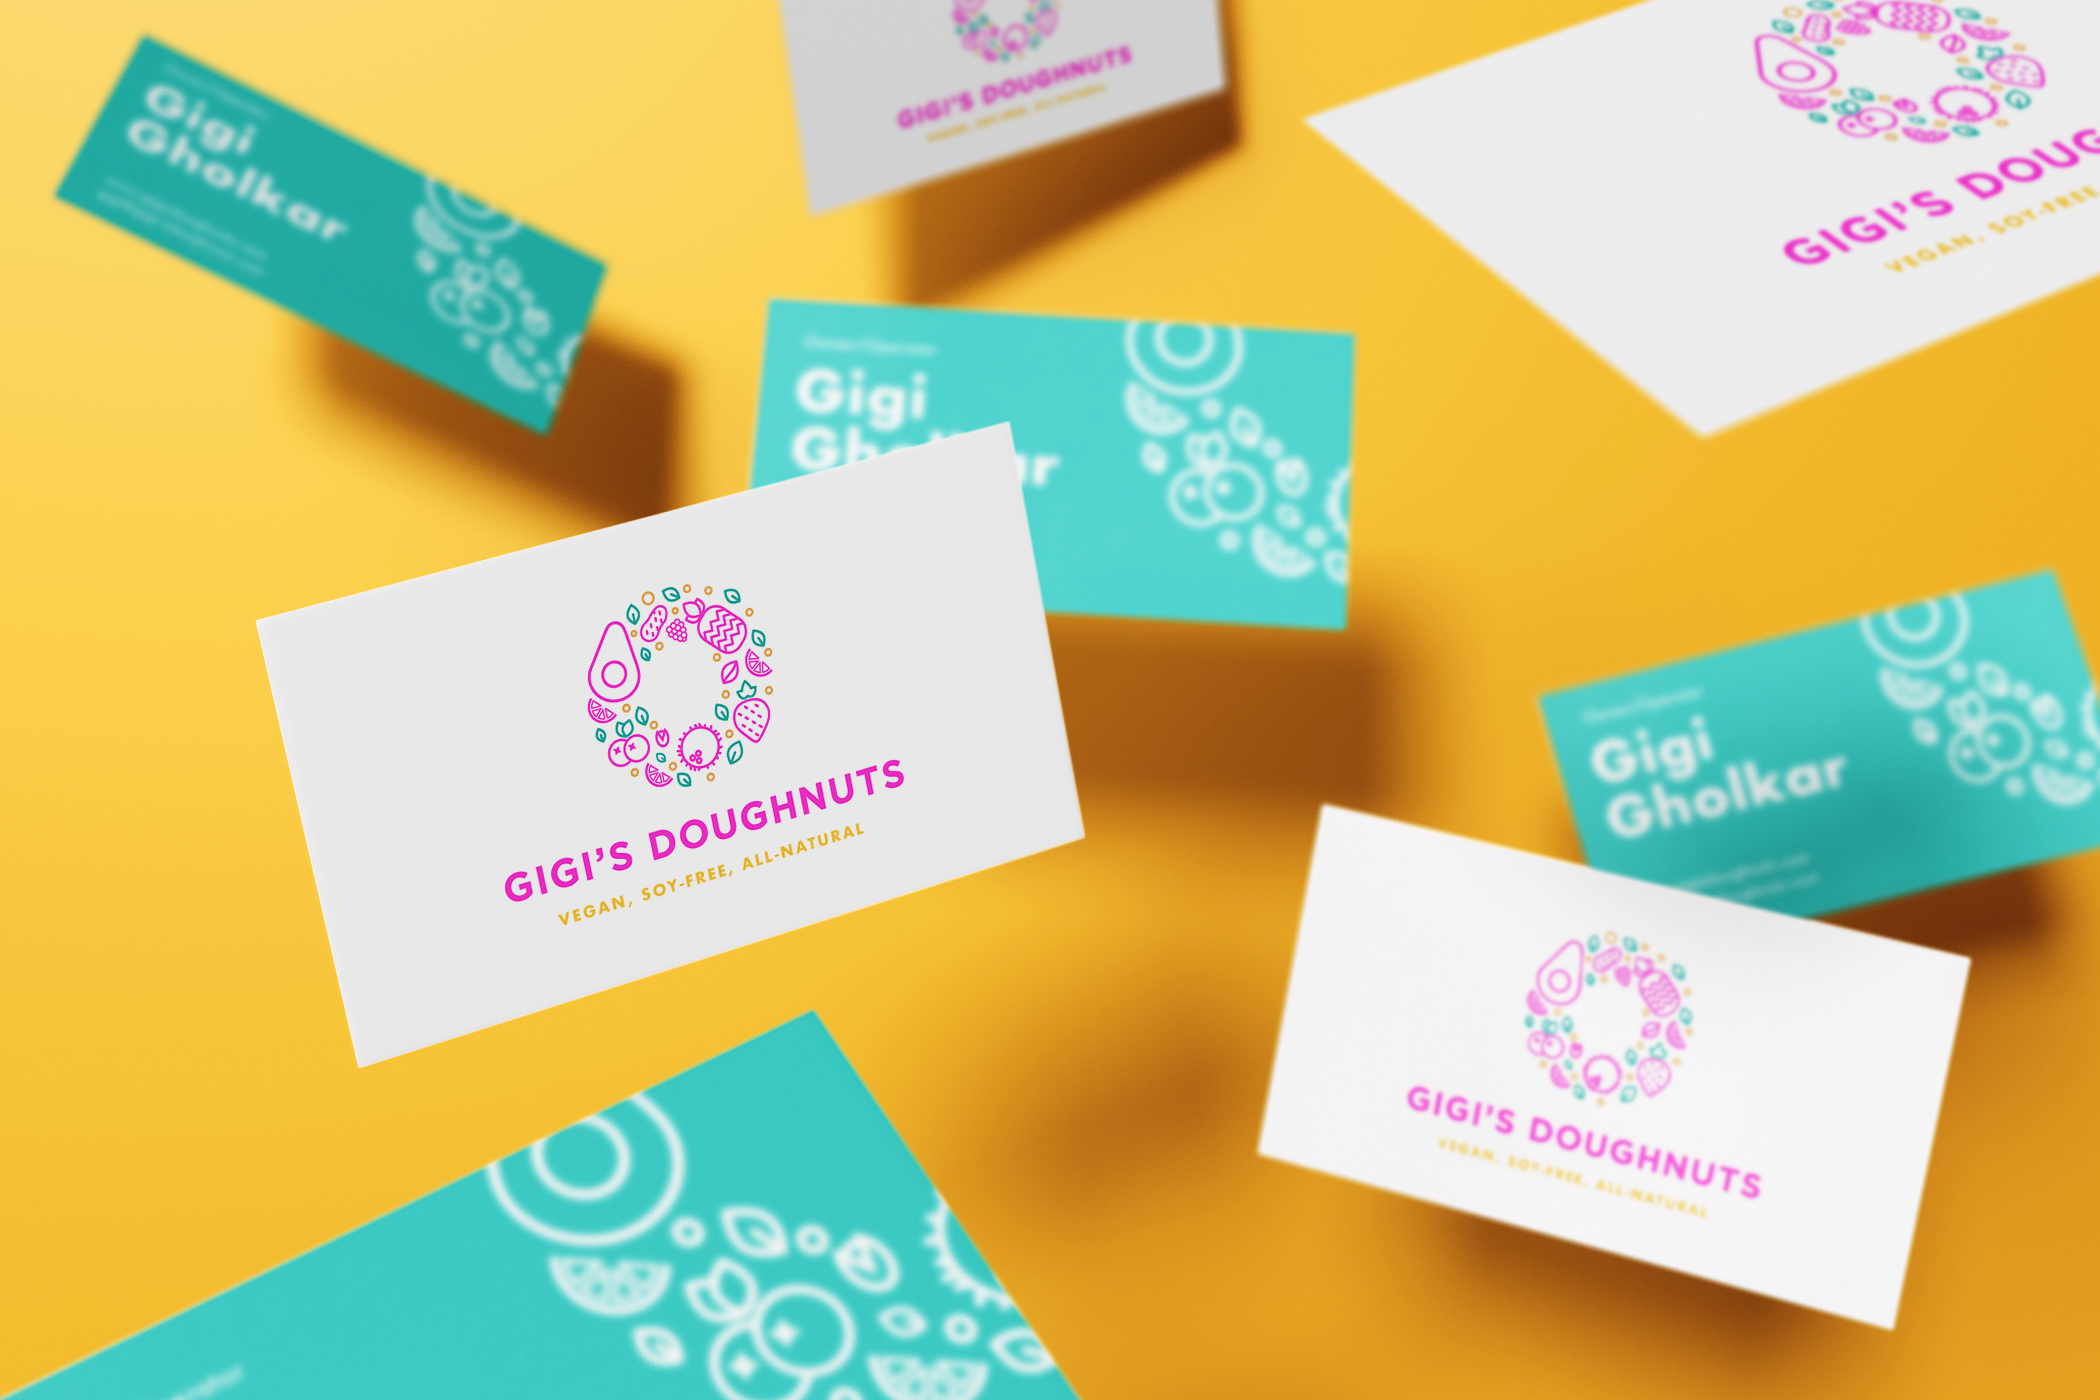 Flying_Business_Cards_Mockup2.jpg